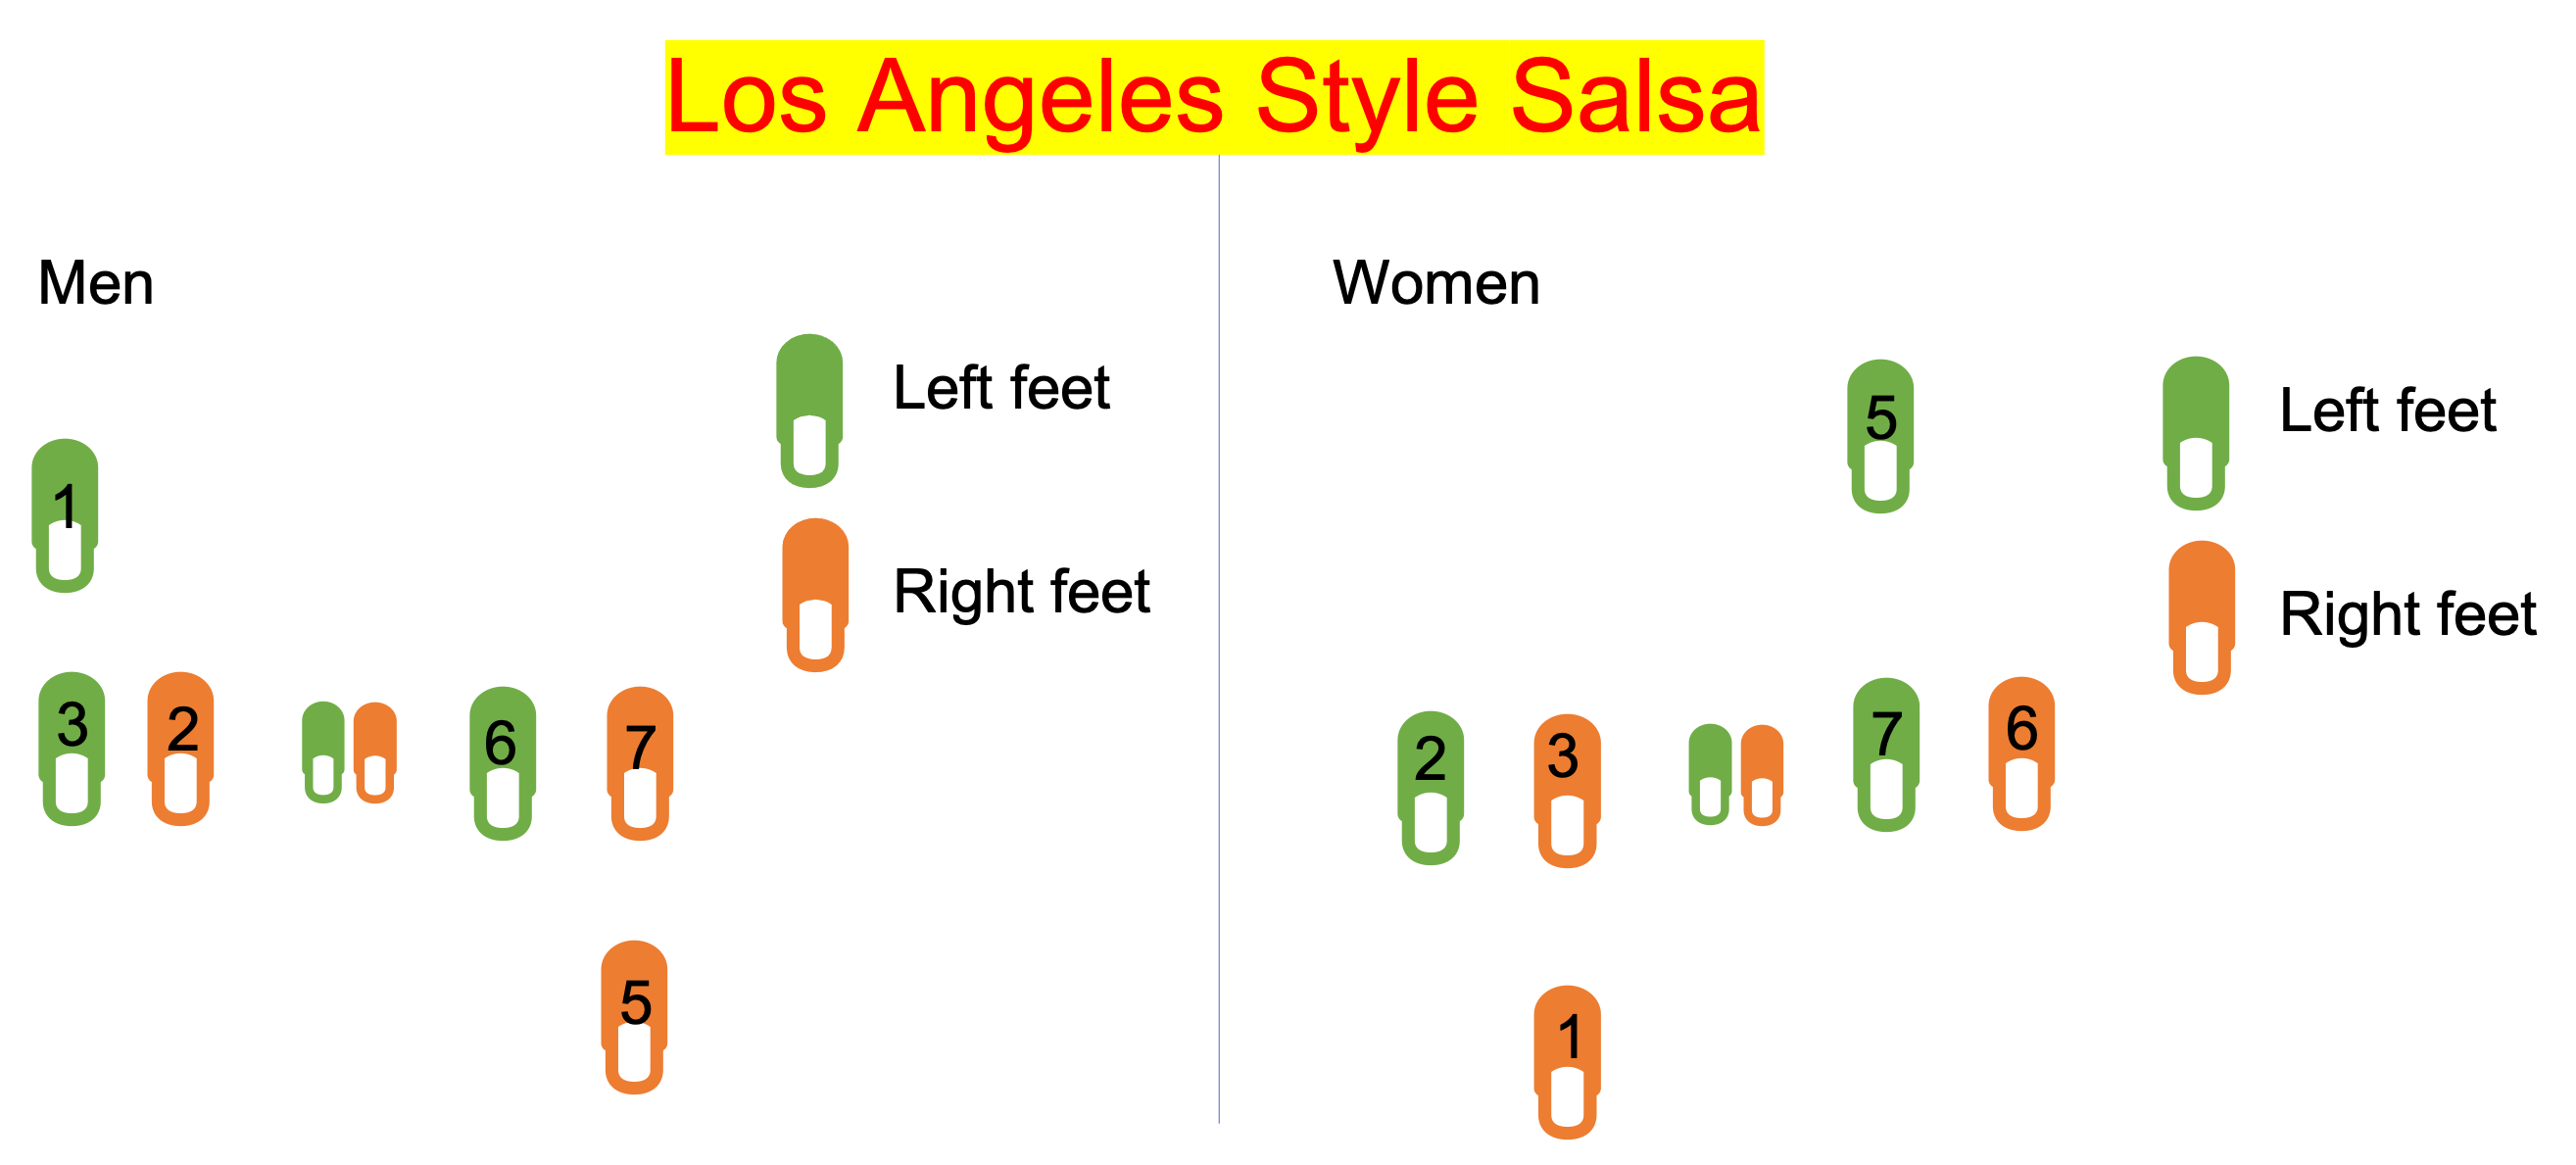 Los Angeles salsa style: basic dance steps for men and women